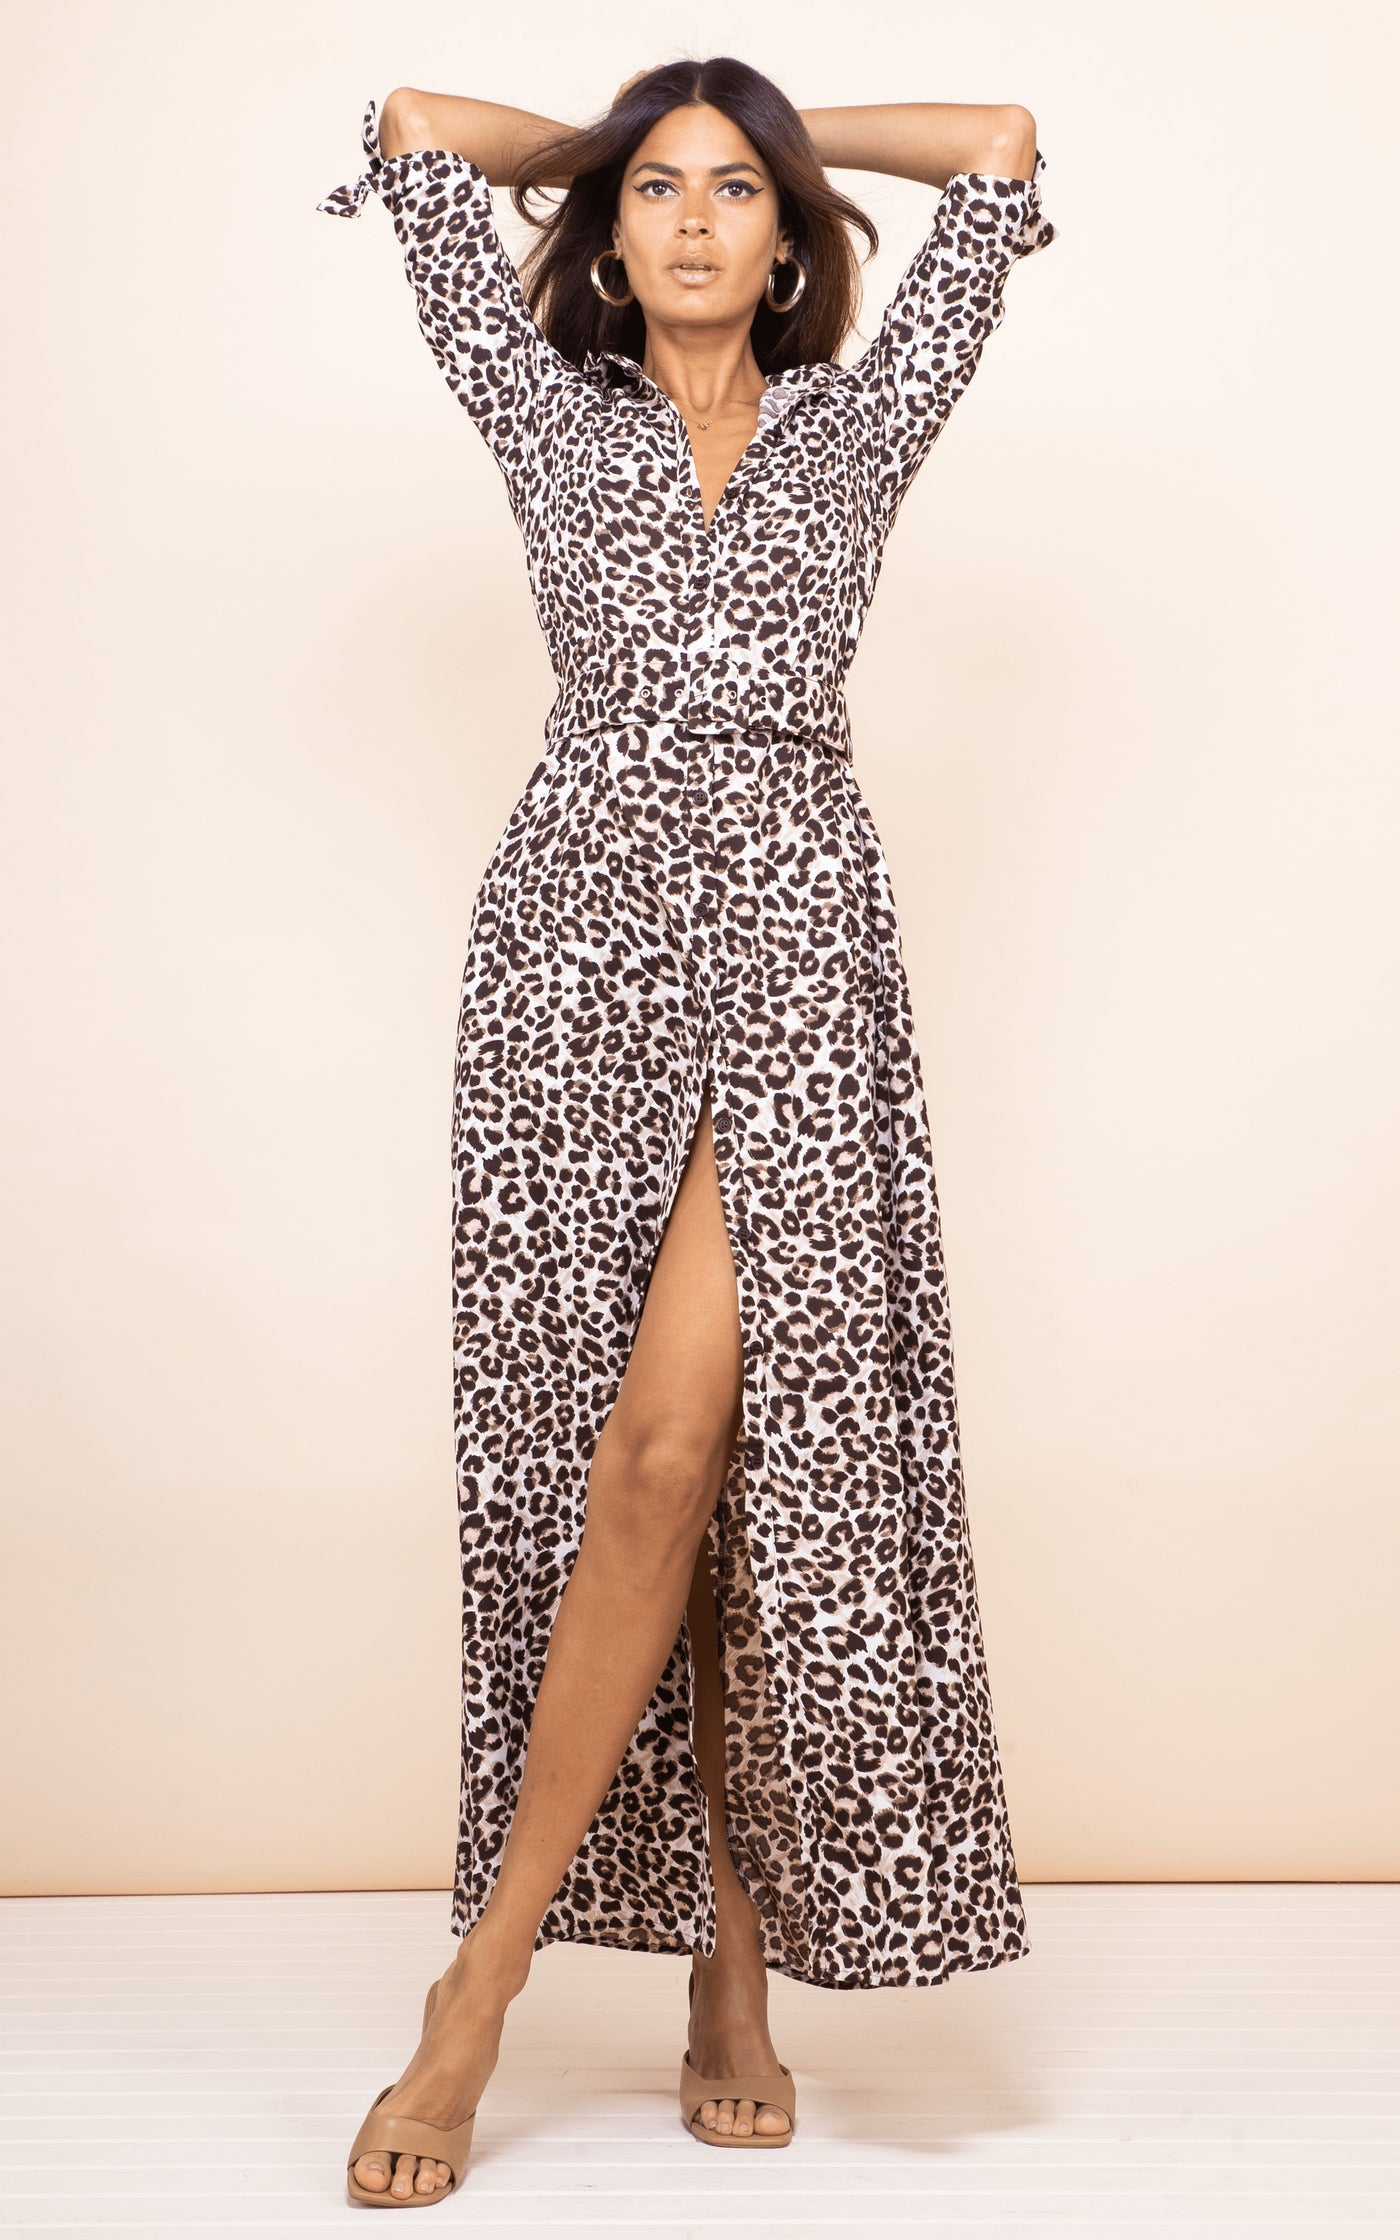 Front-facing brunette model with arms up wears Dove Dress in leopard print by Dancing Leopard